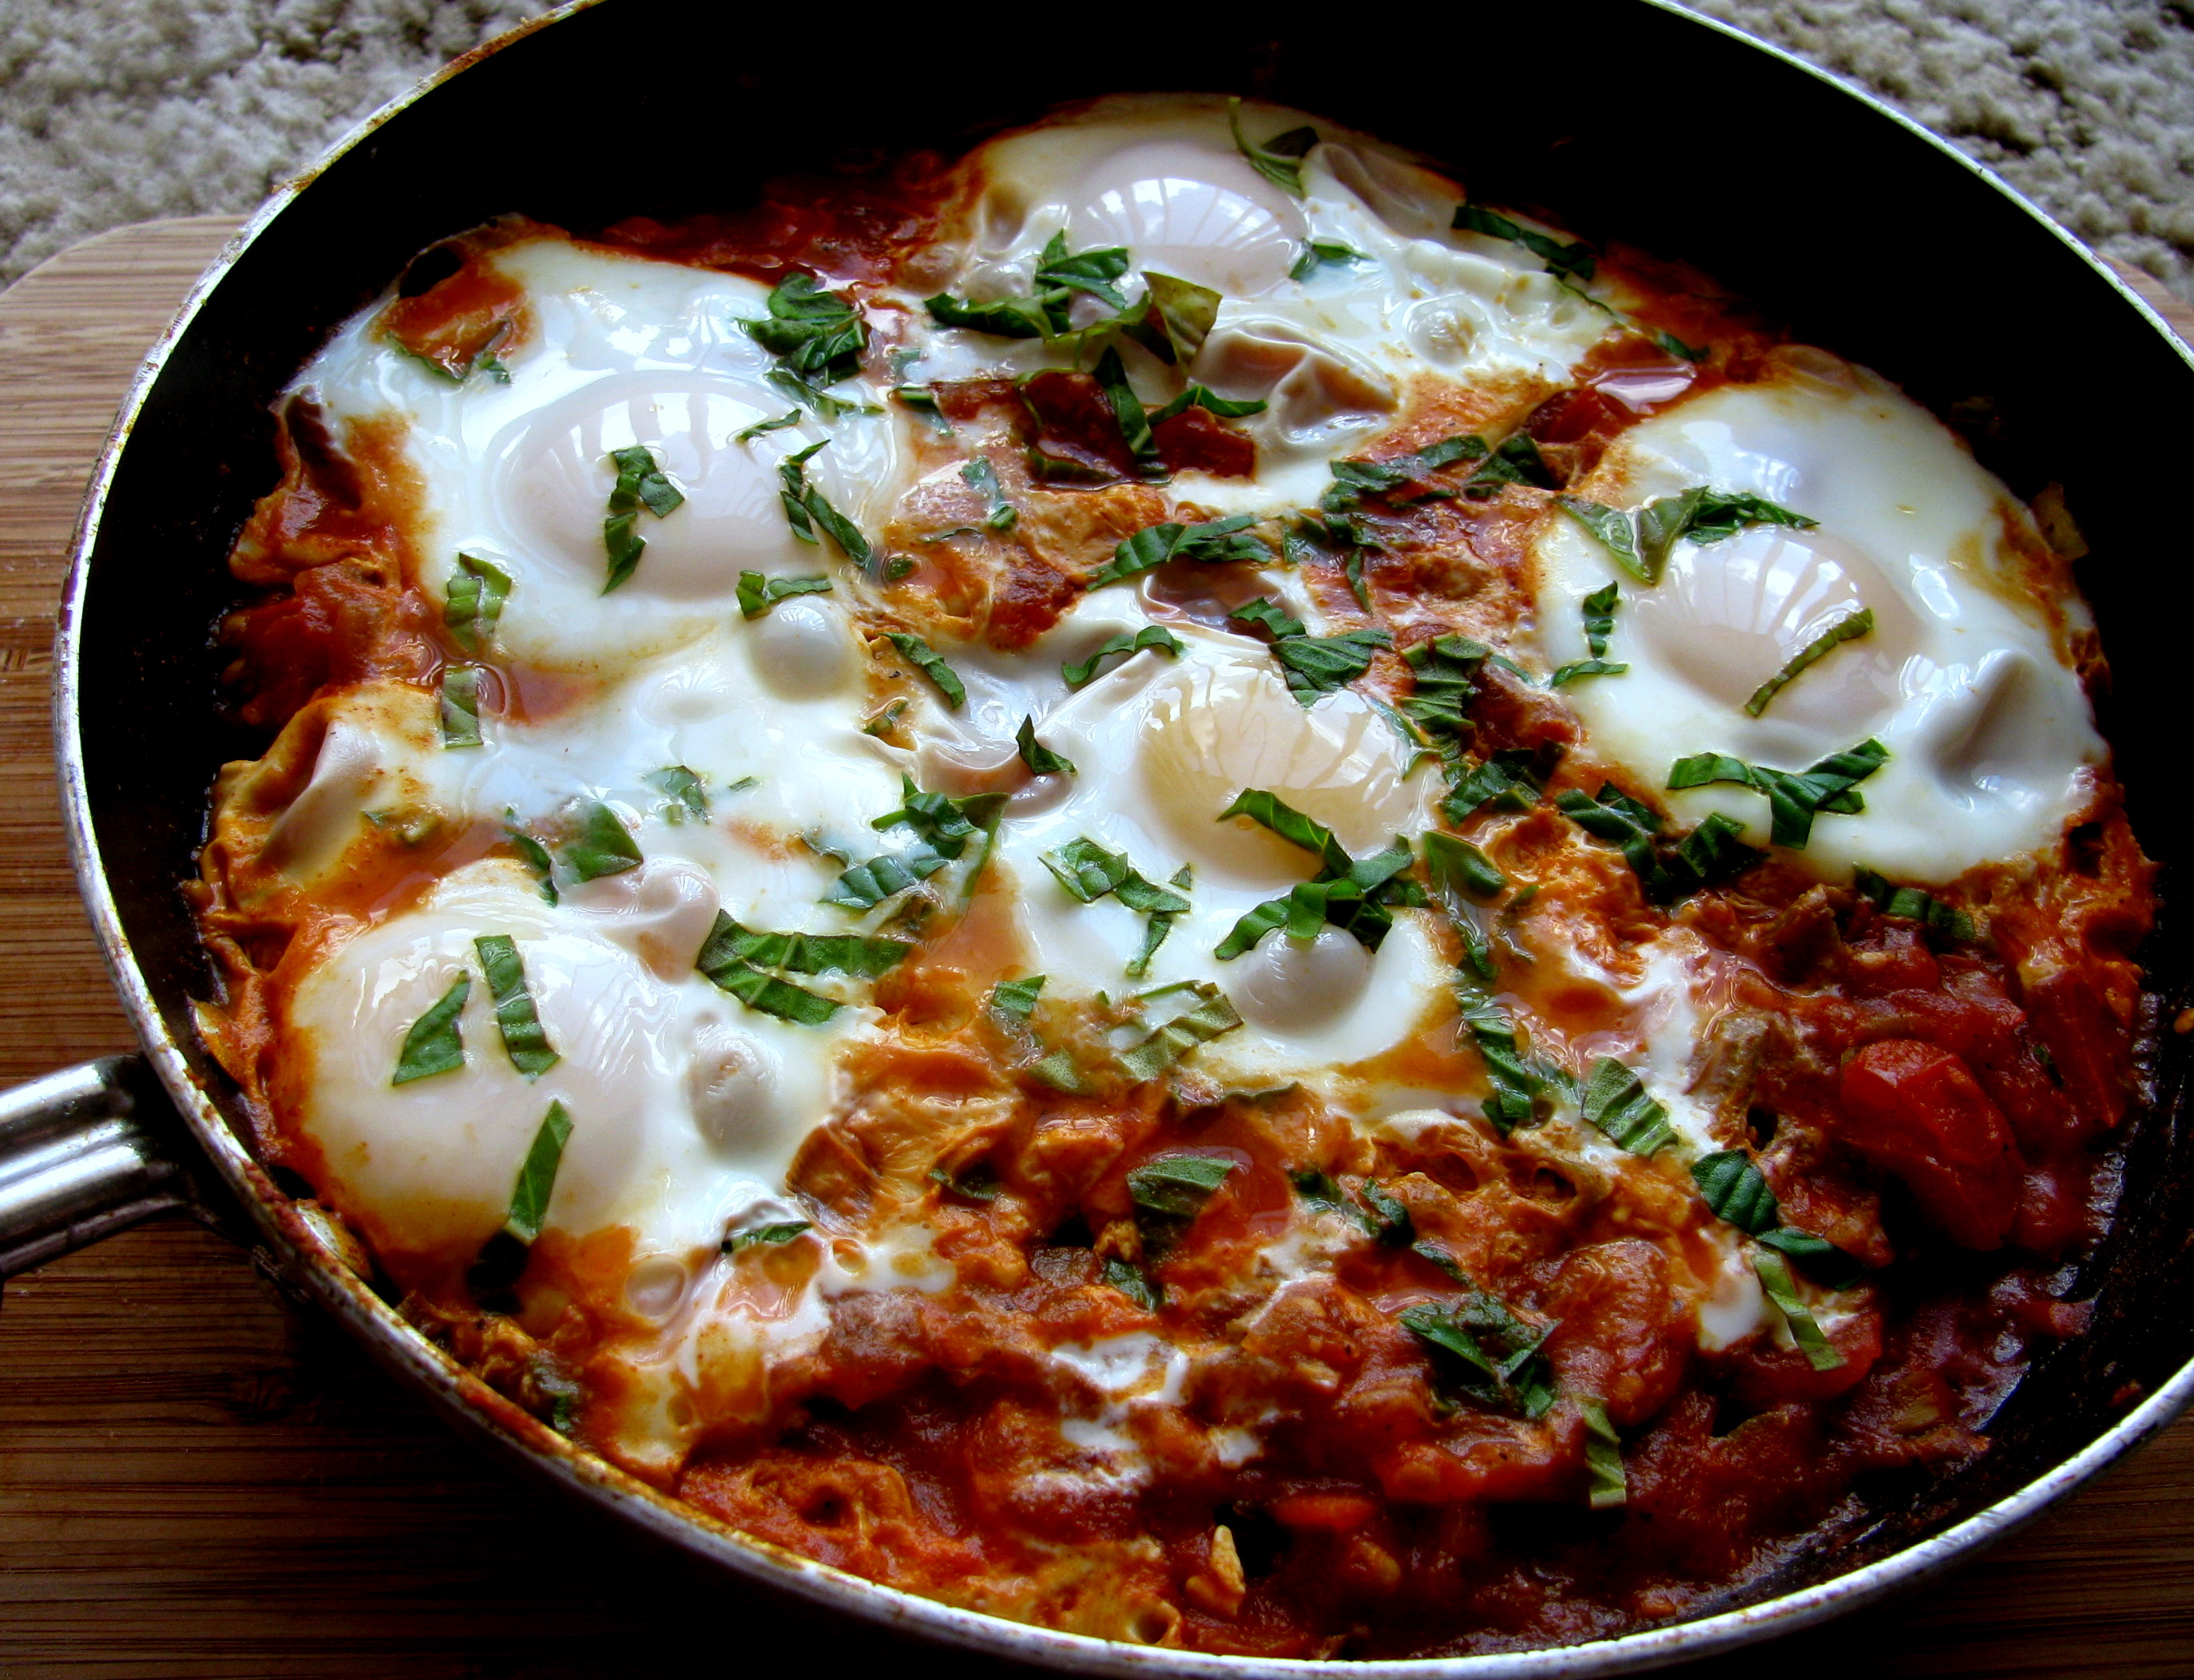 Shakshuka. Or is it Shakshouka? | Turning Over a New Leaf